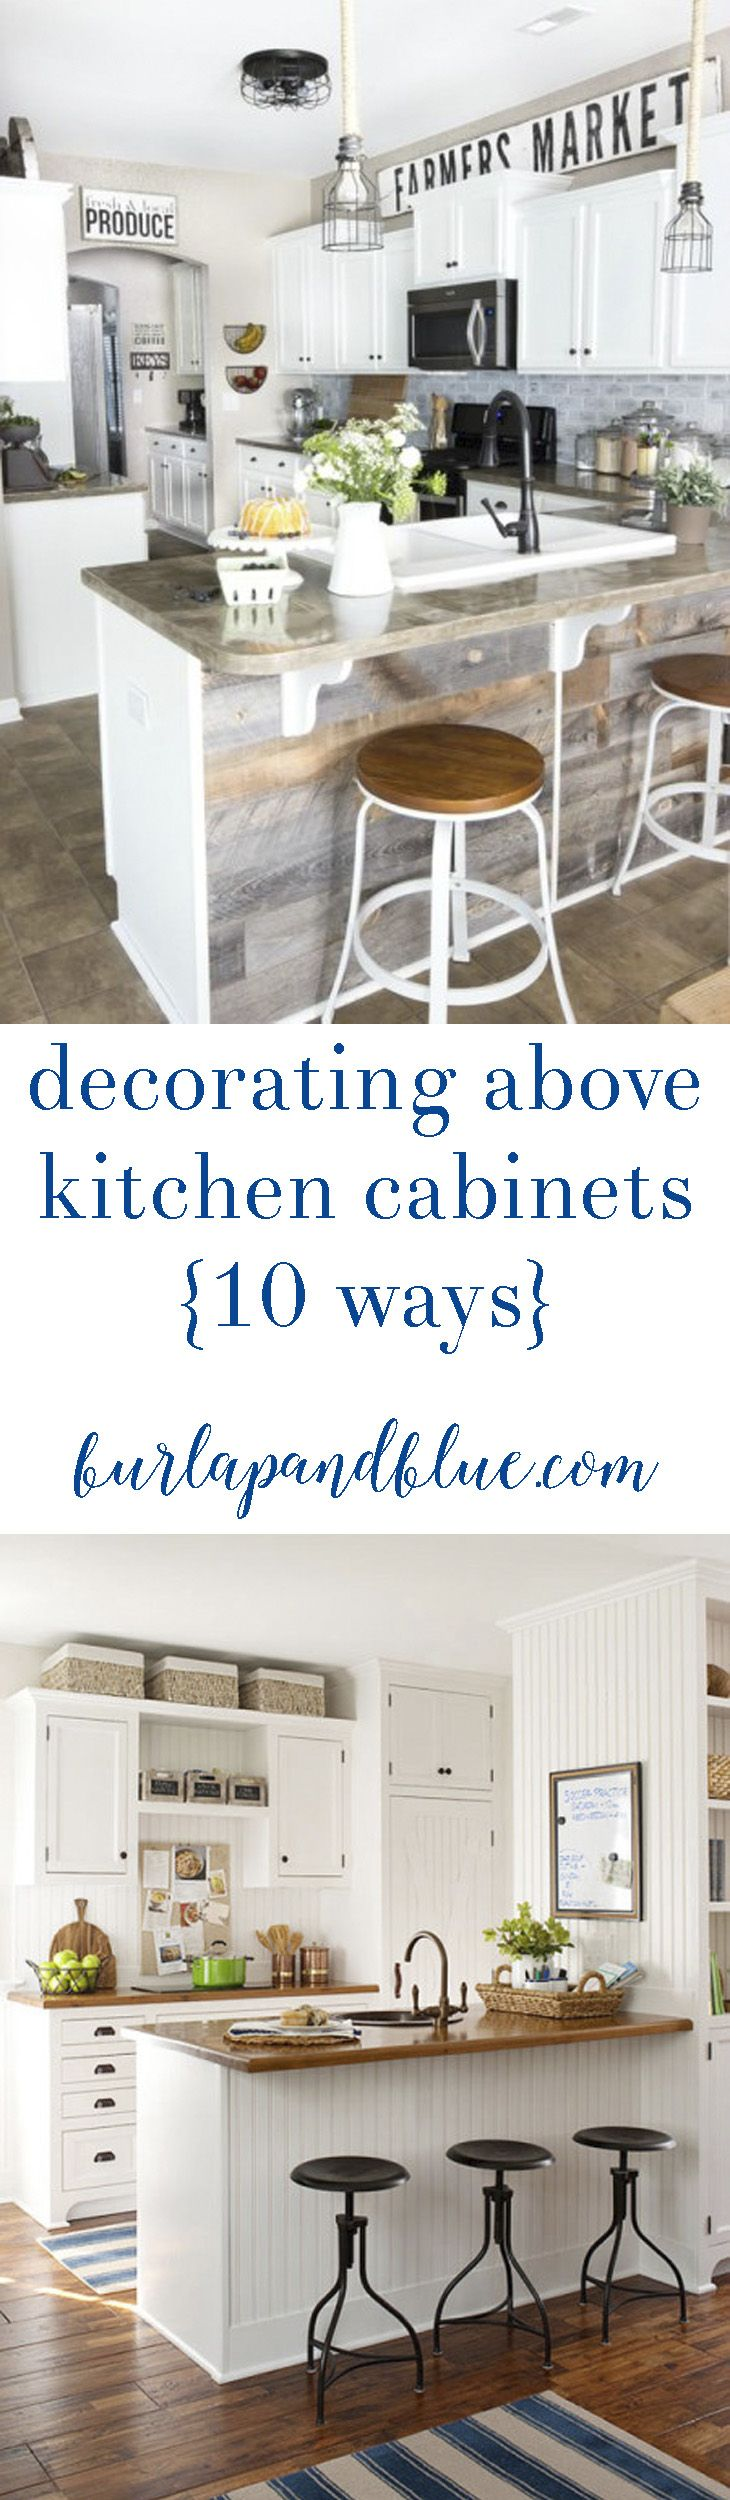 decorating above kitchen cabinets  10 ways    Kitchens Feed the Soul     cabinets not reach the ceiling  wondering how to decorate above them   sharing 10 easy ways to decorate above kitchen cabinets  from farmhouse to  classic